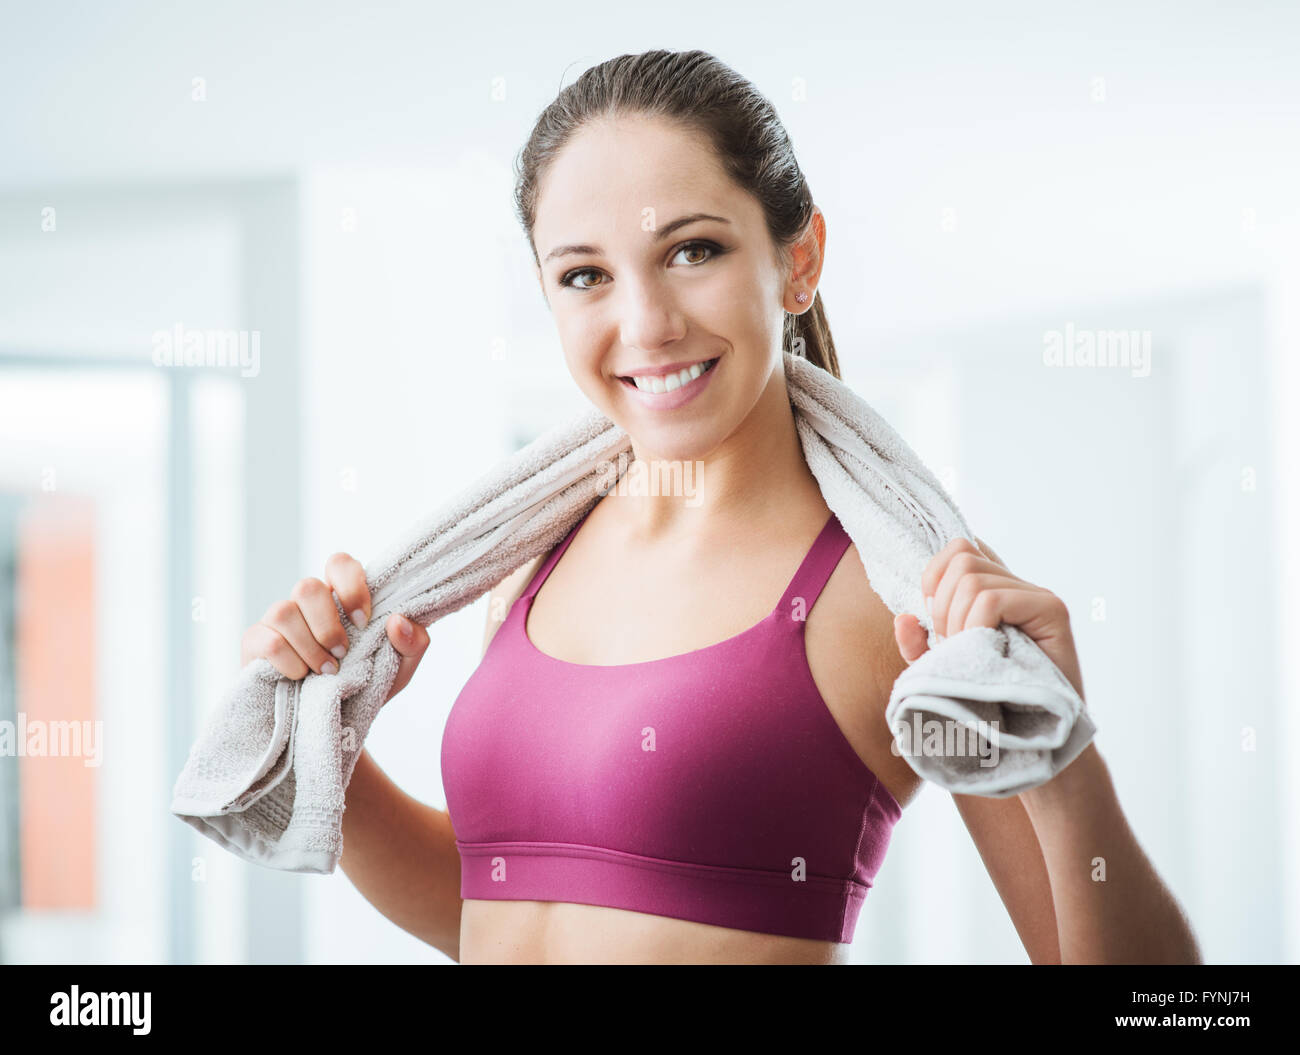 Beautiful sporty woman with towel relaxing at the gym after working out, healthy lifestyle and fitness concept Stock Photo